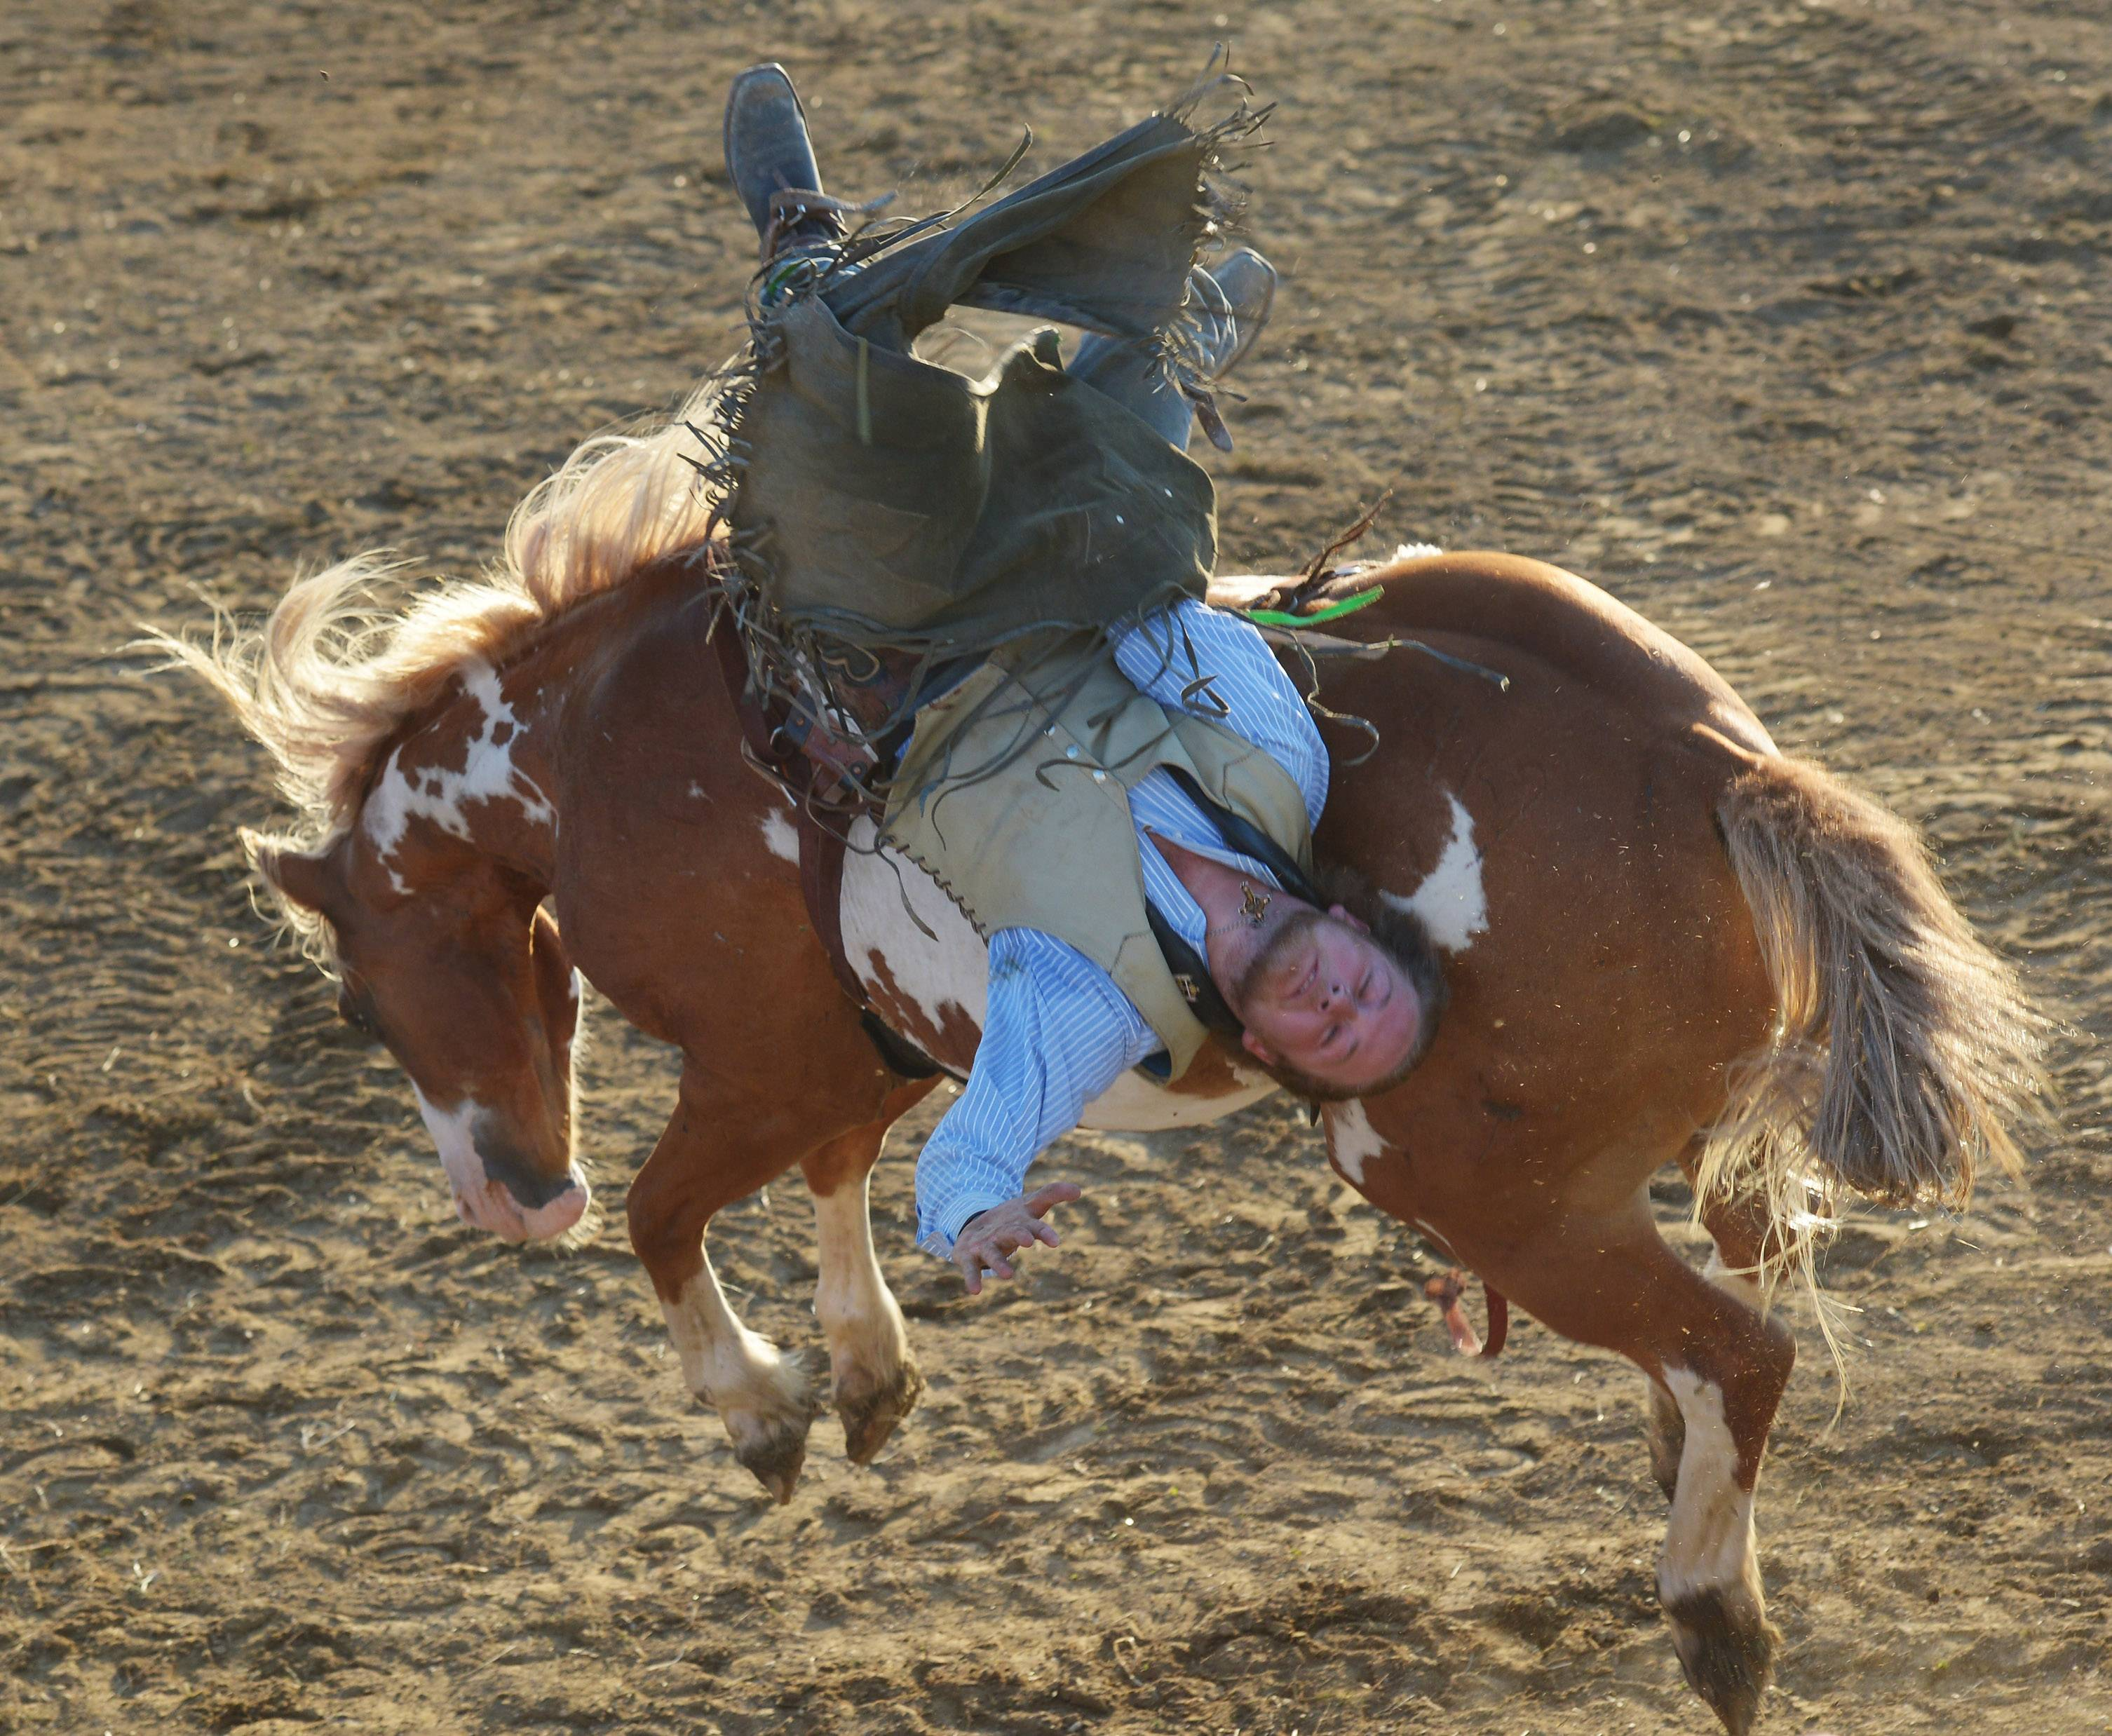 Tim Murphy competes in bareback riding during the 54th annual IPRA Championship rodeo Saturday in Wauconda.